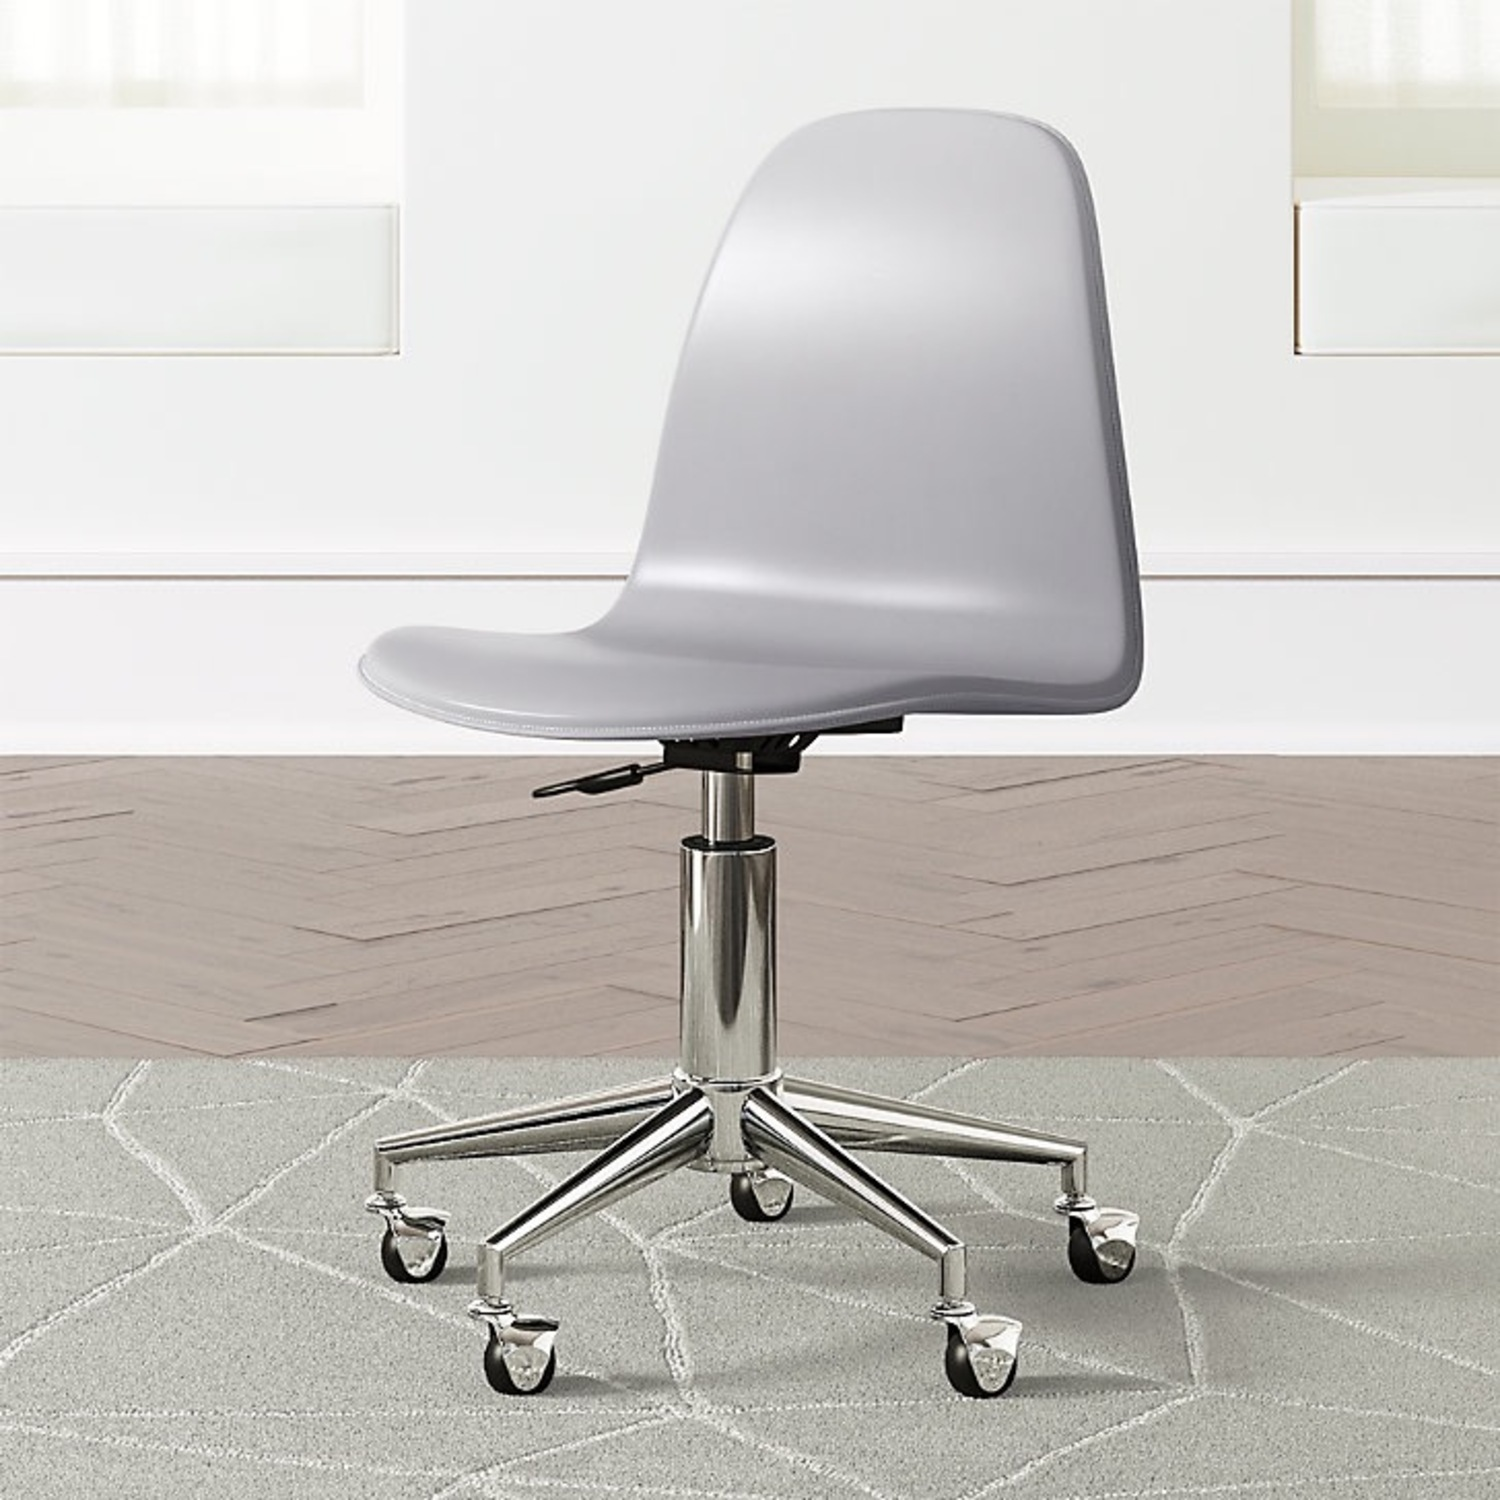 Crate & Barrel Class Act Light Grey & Silver Desk Chair - image-1